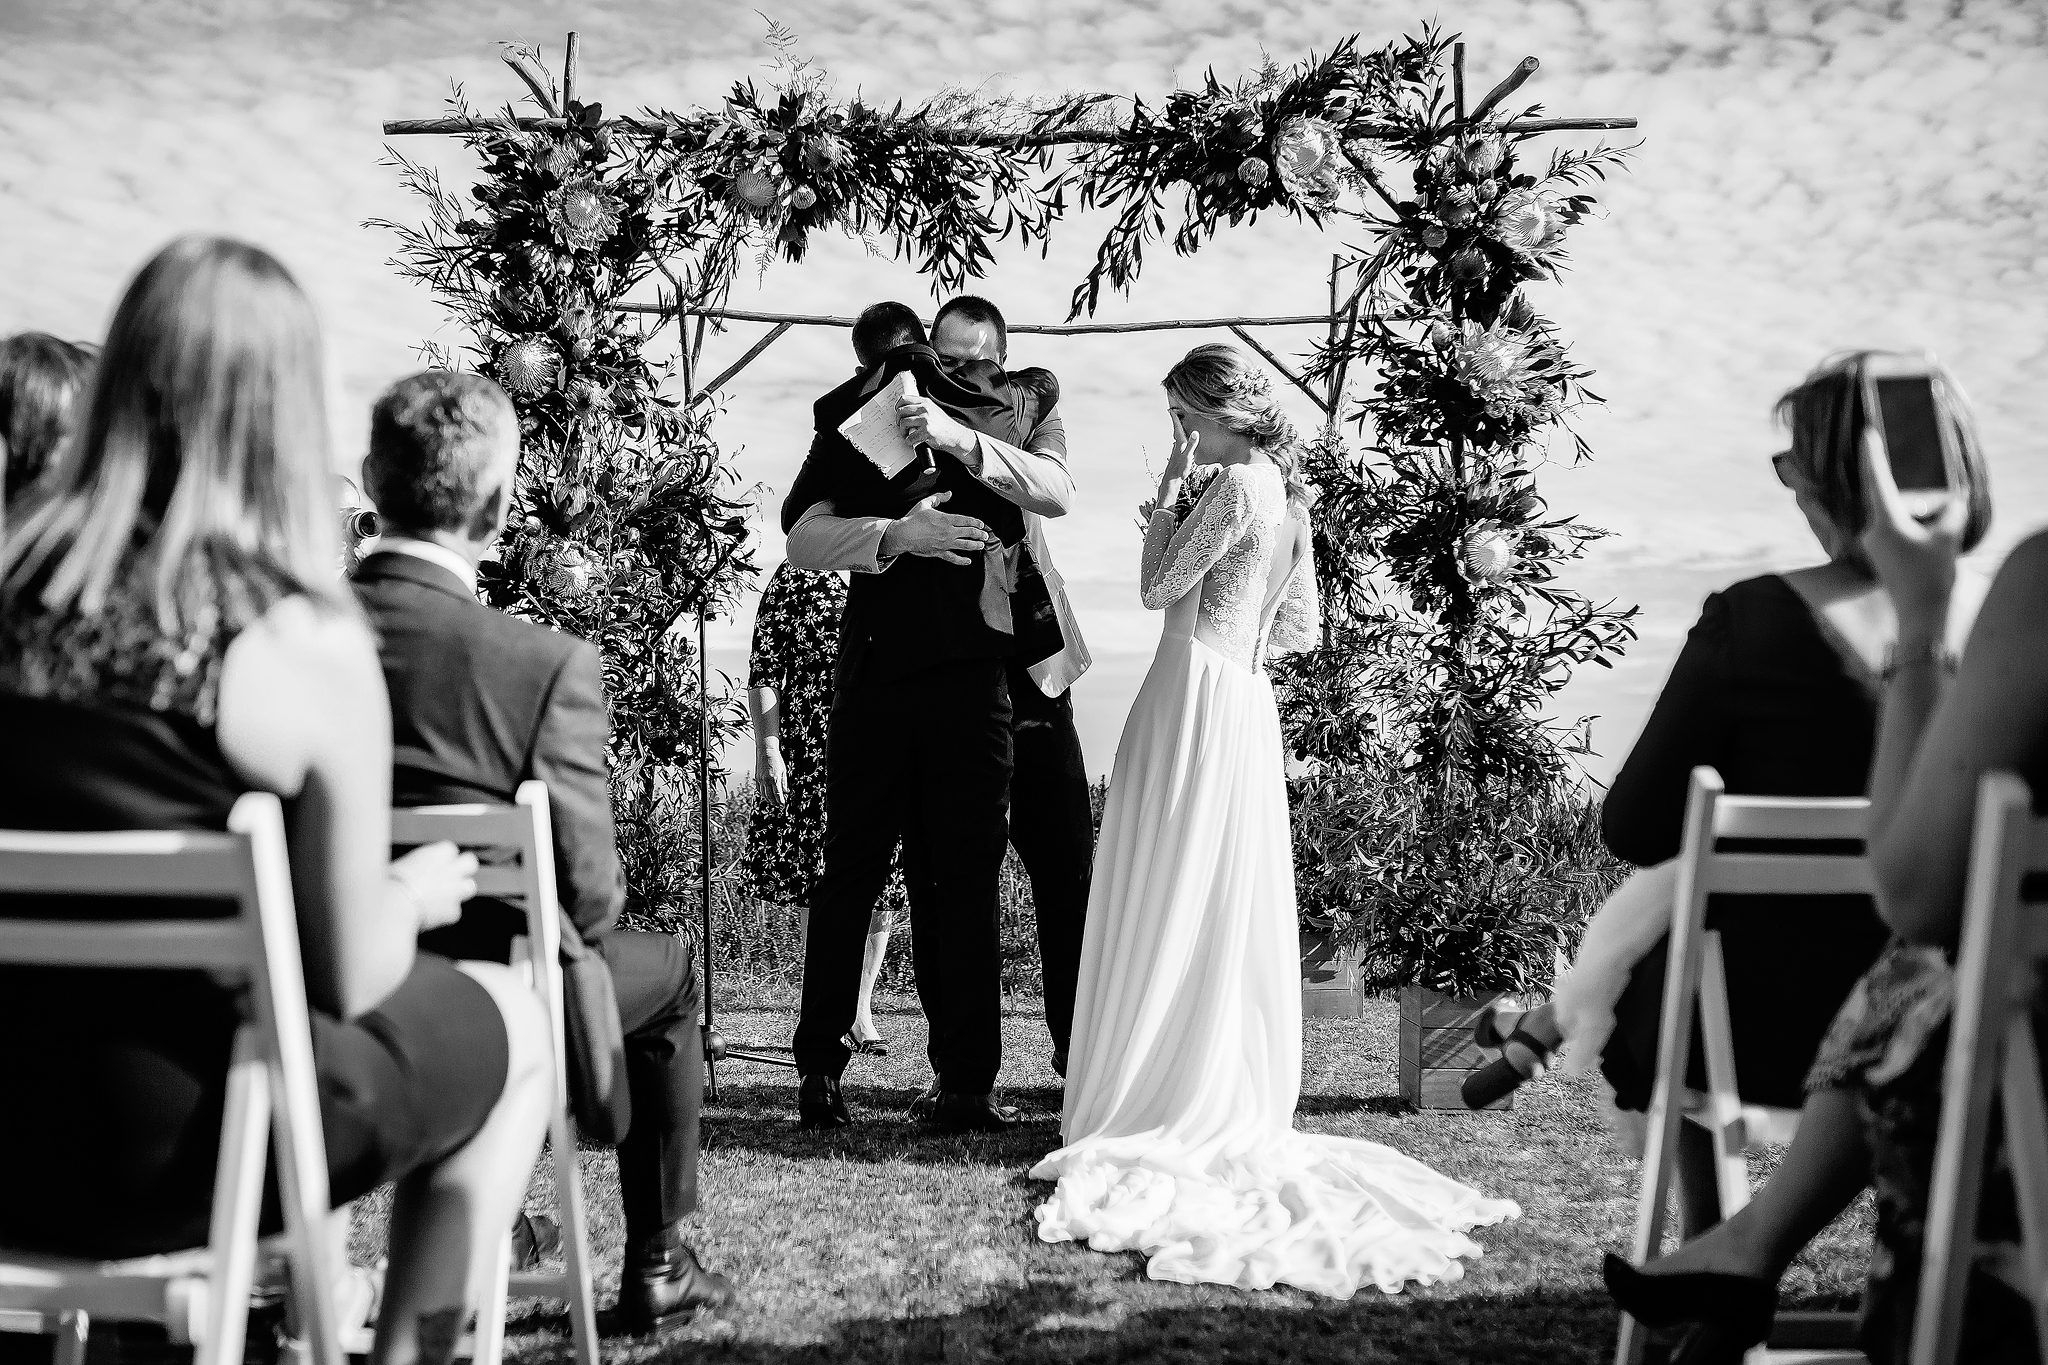 Emotional moment and embrace for groom at ceremony - photo by Ruan Redelinghuys Photography